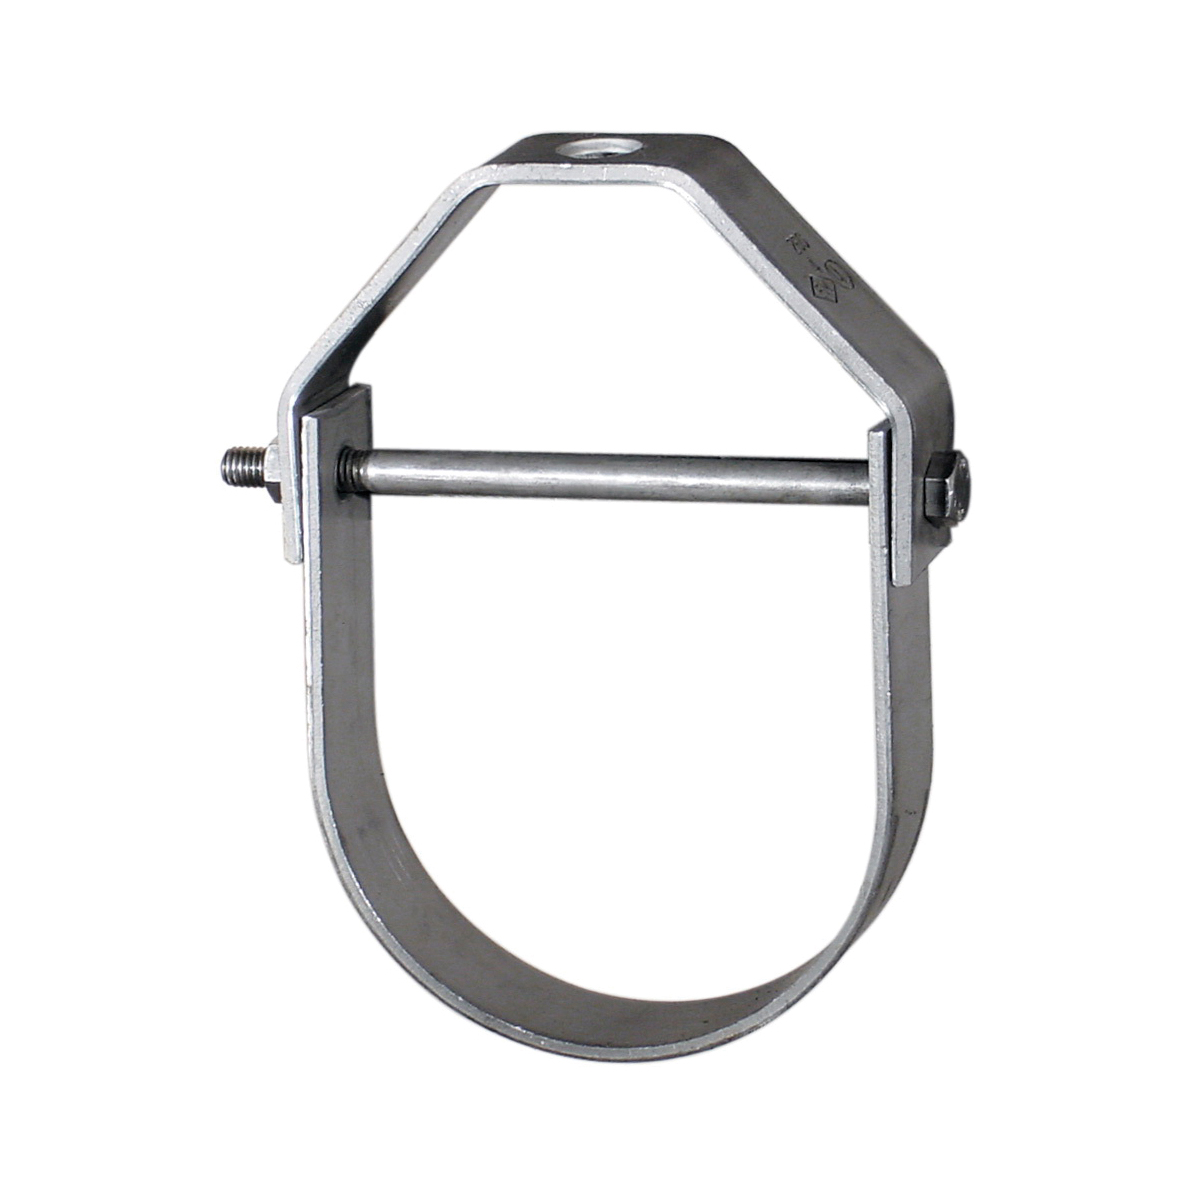 Anvil® 0500359609 FIG 260 Adjustable Clevis Hanger, 3 in Pipe, 1/2 in Rod, 1350 lb Load, Carbon Steel, Hot Dipped Galvanized